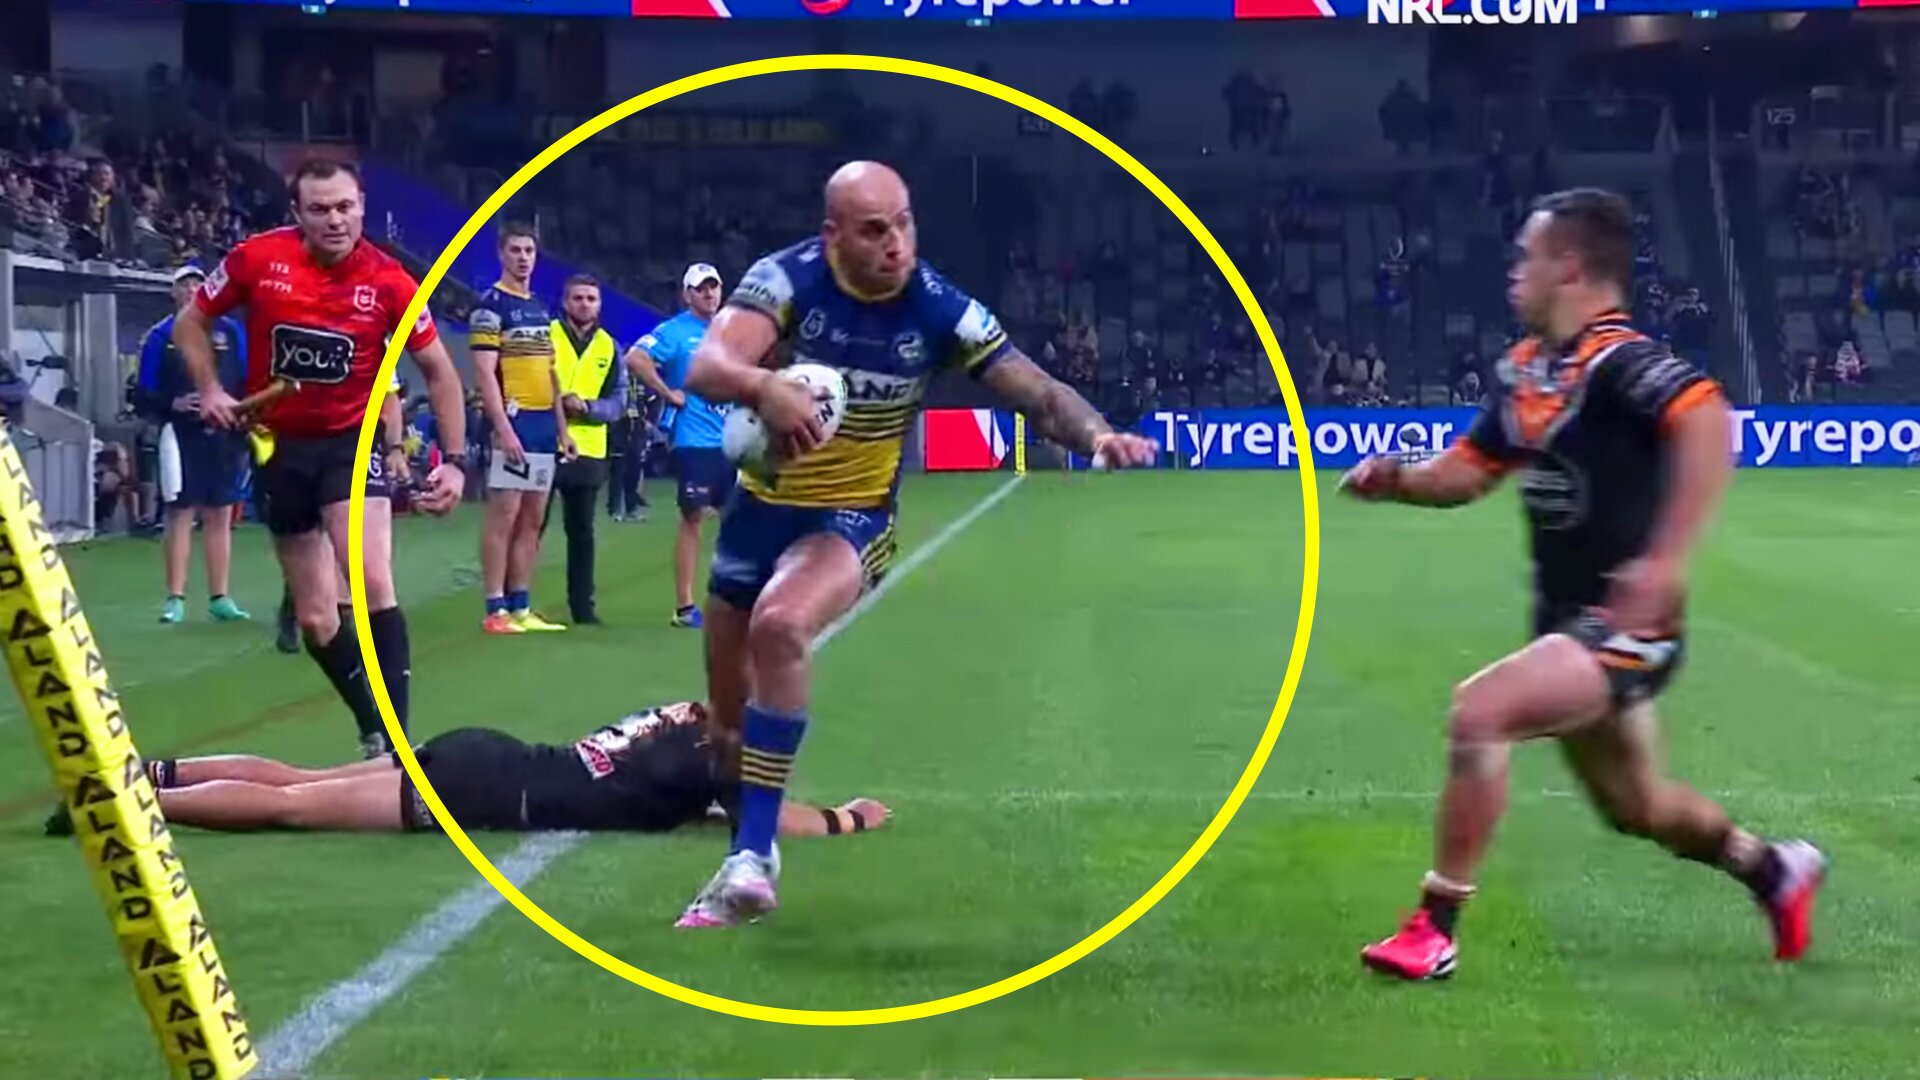 People are refusing to believe a rugby player would try this when scoring a try